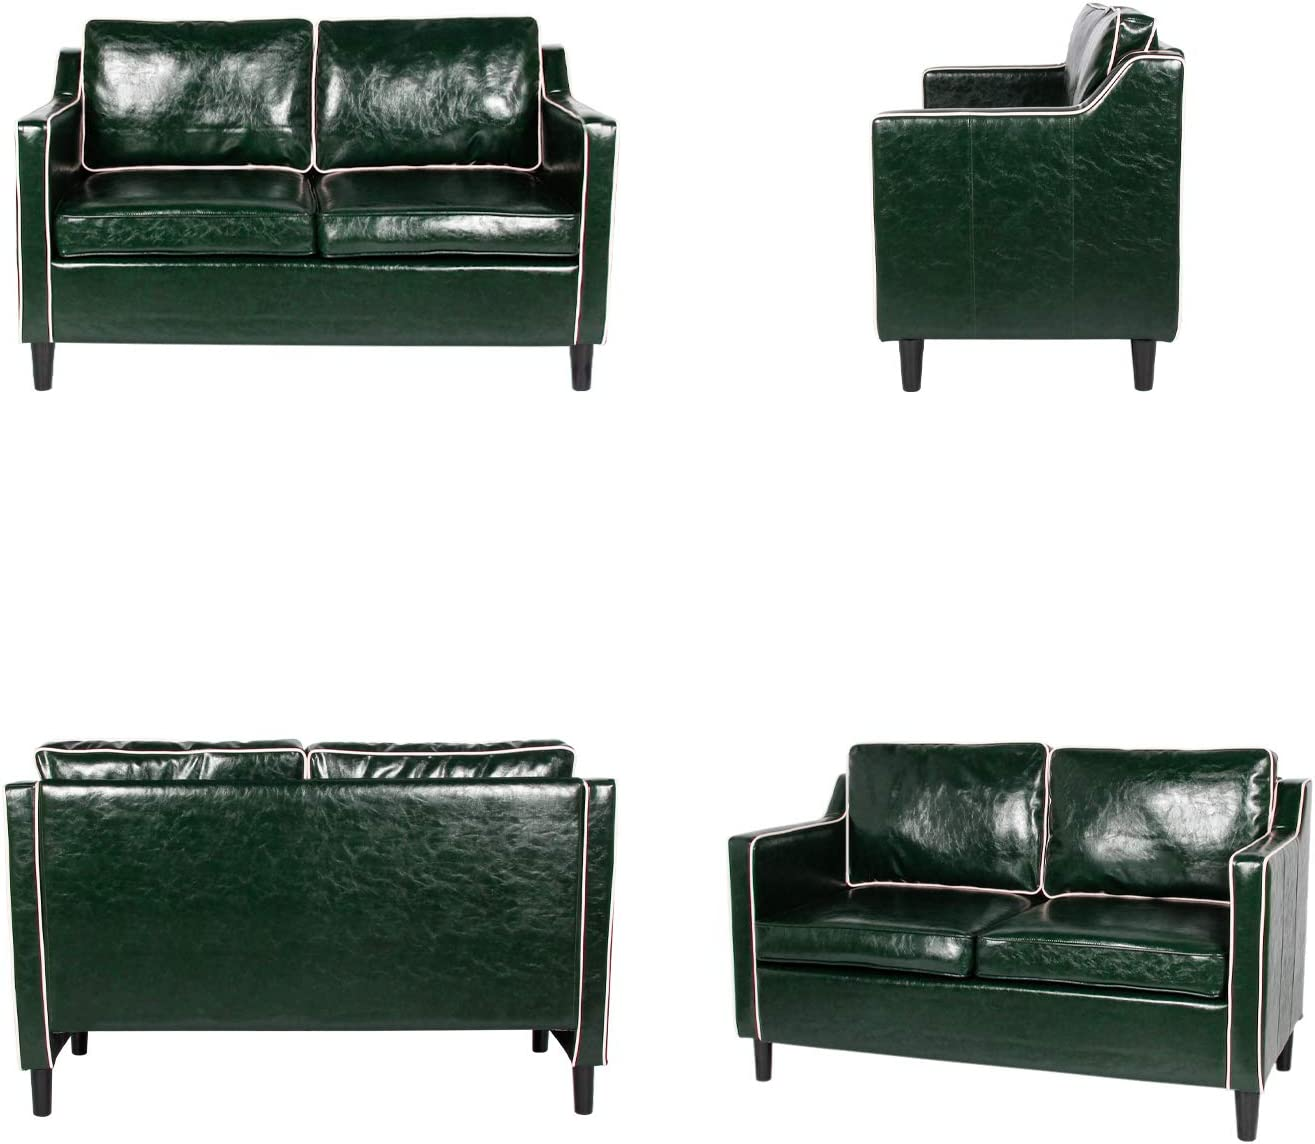 Furniture Mid Century Modern Loveseat Futon Sofa Couch Faux Leather Couches And Sofas For Living Room Office Couch 2 Seat Home Furniture Green Green White 1pc Loveseat Home Kitchen Startsolar Com Au